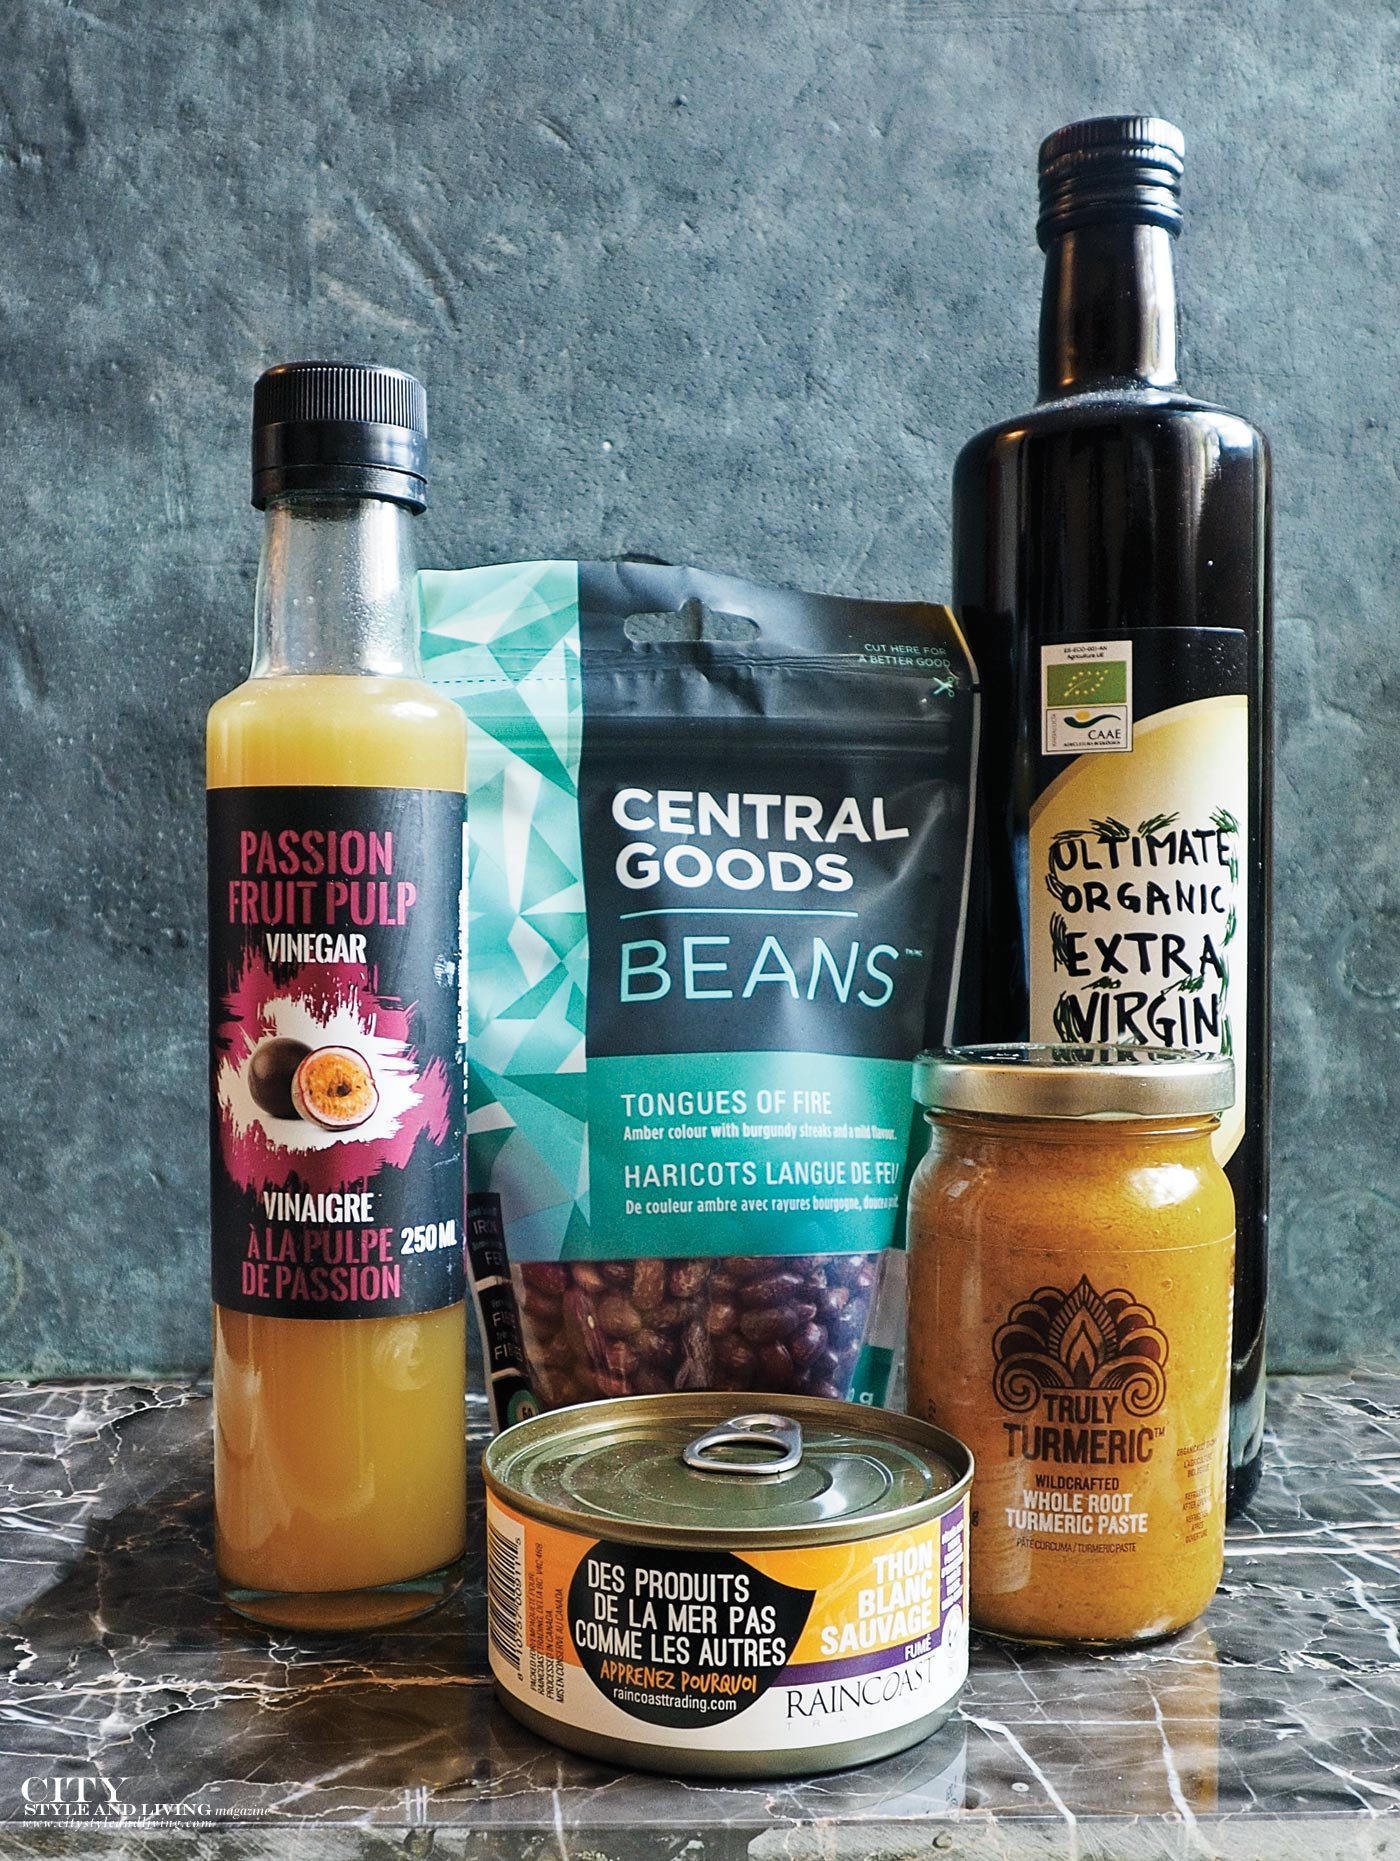 City Style and Living Magazine world pantry products for fall 2017